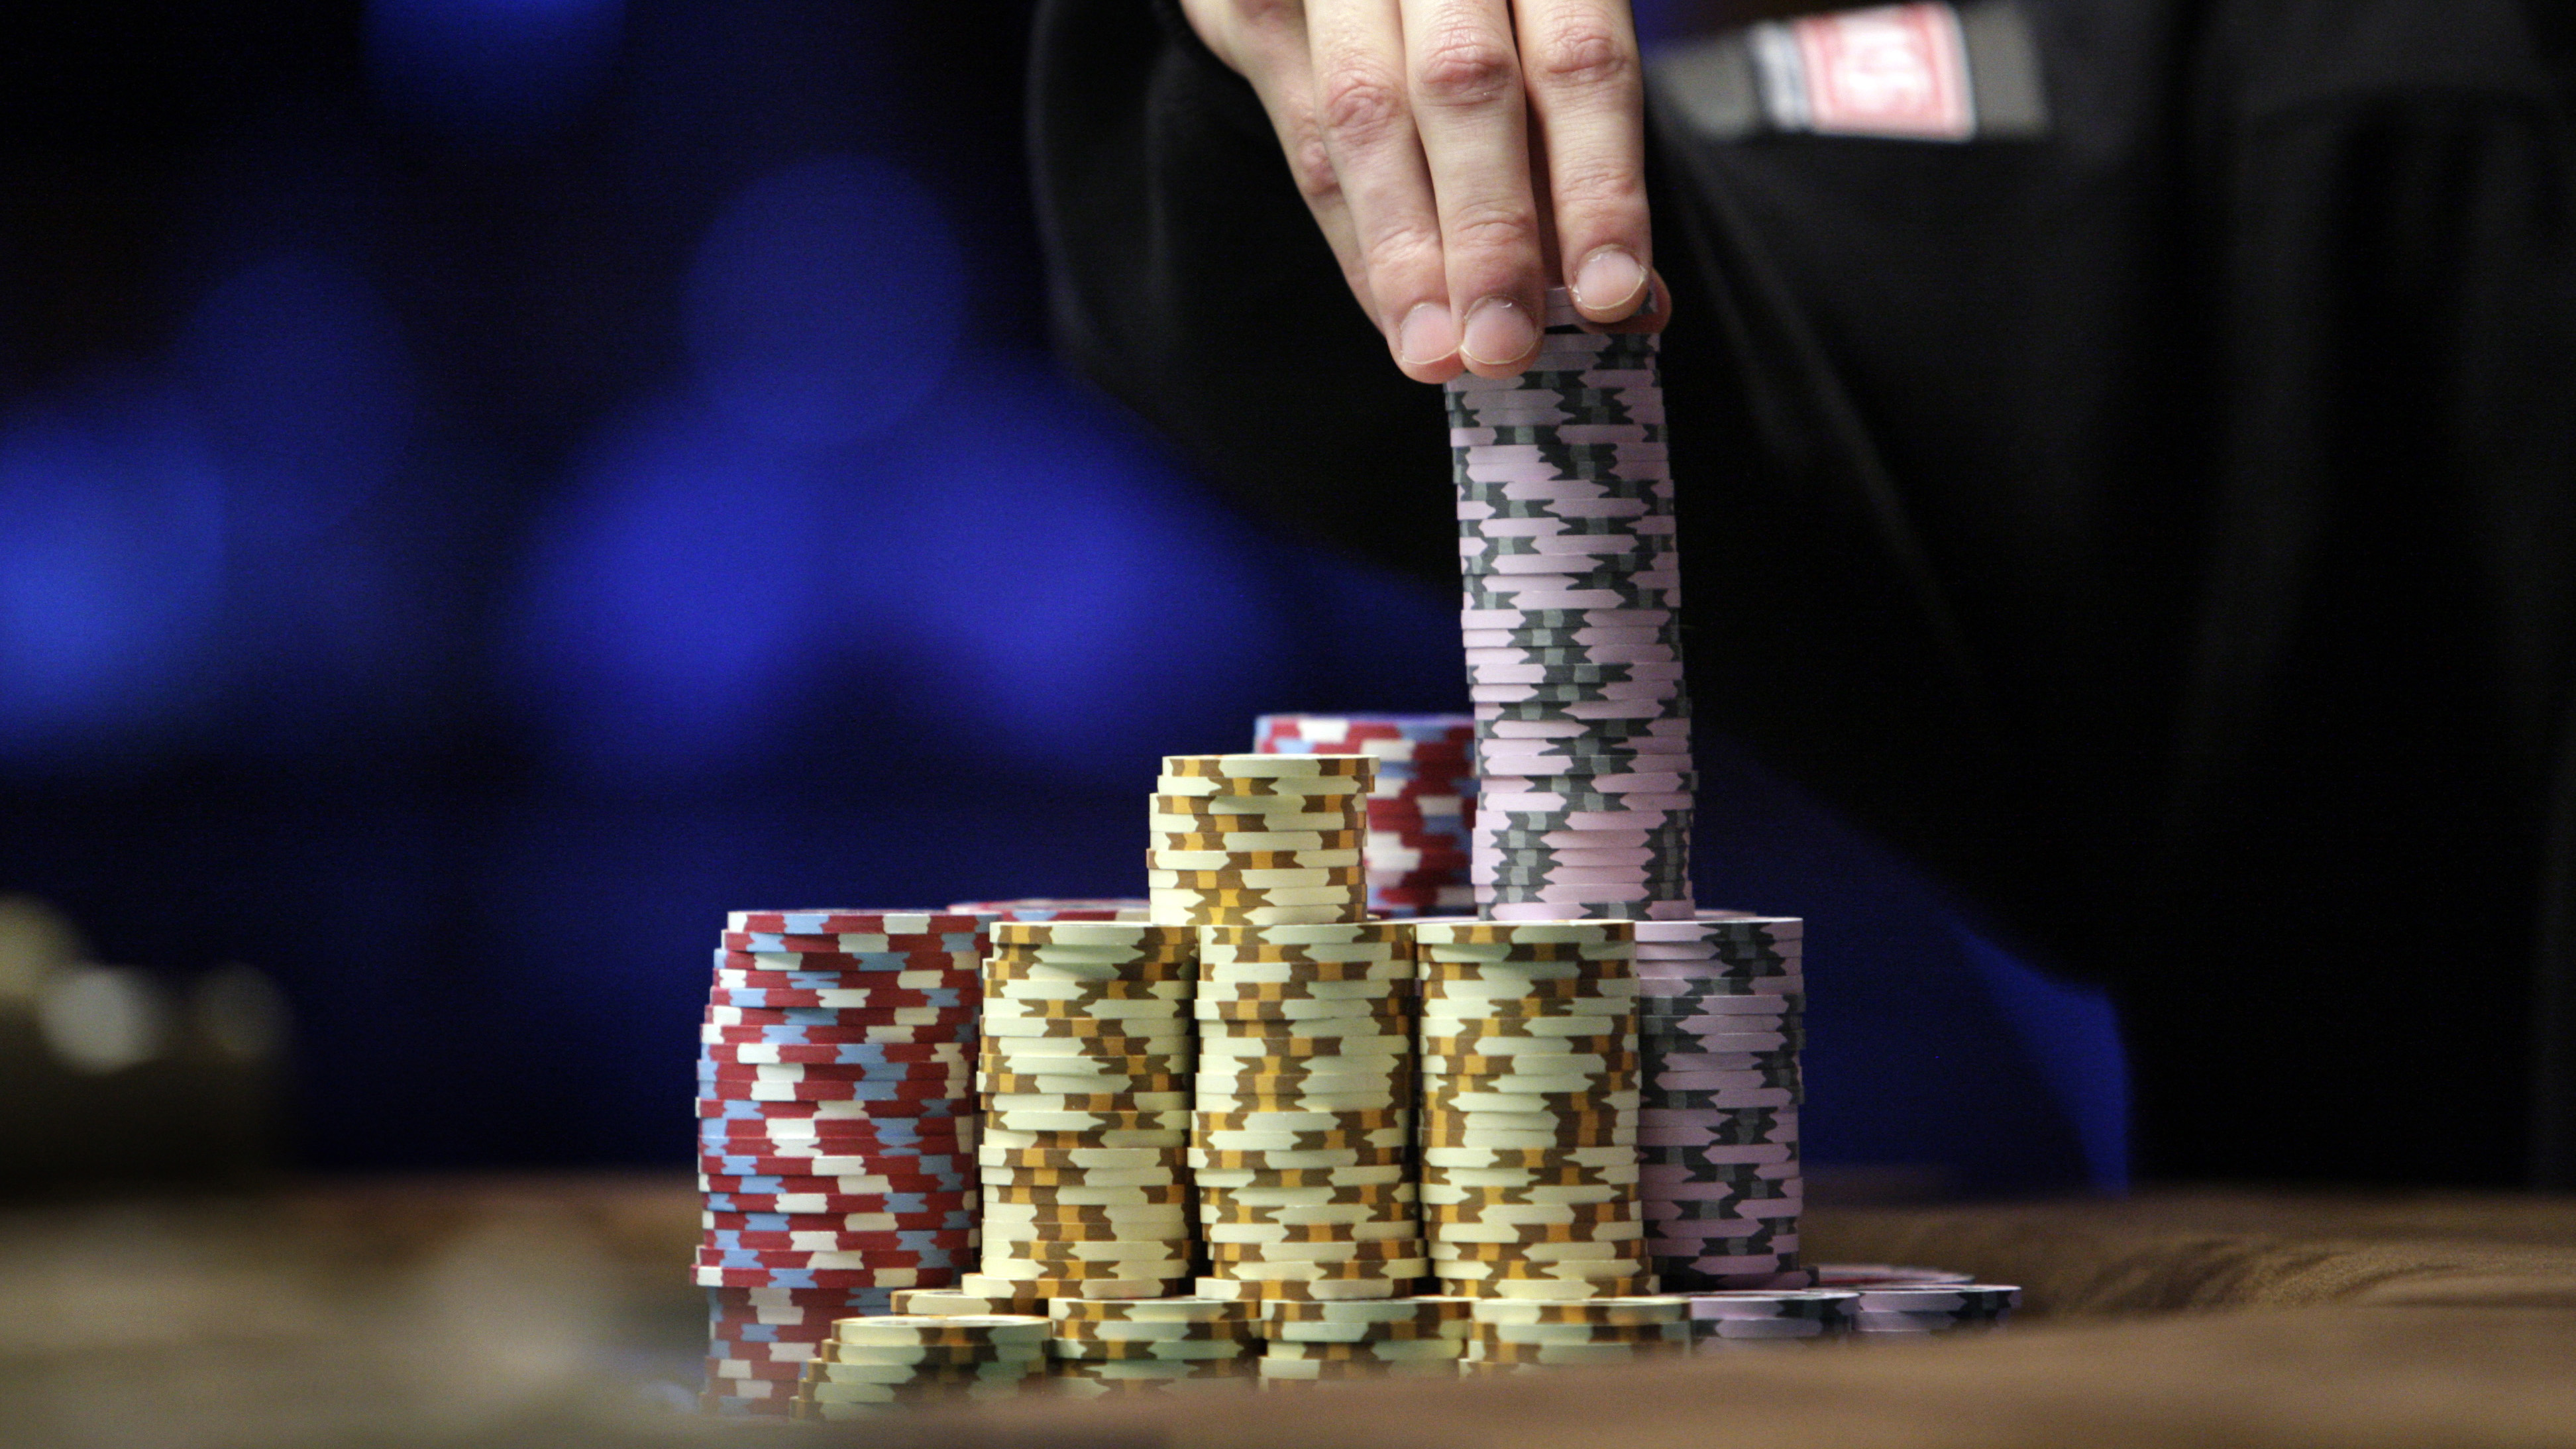 Jonathan Duhamel of Canada stacks chips as he plays against John Racener of the U.S. in the finals of World Series of Poker Main Event at the Rio hotel-casino in Las Vegas, Nevada November 8, 2010. Duhamel, 22, the first Canadian and the first French-speaking champion in the history of the World Series of Poker, won the bracelet and $8.9 million in prize money. REUTERS/Las Vegas Sun/Steve Marcus (UNITED STATES - Tags: SOCIETY) - GM1E6B91ADH01